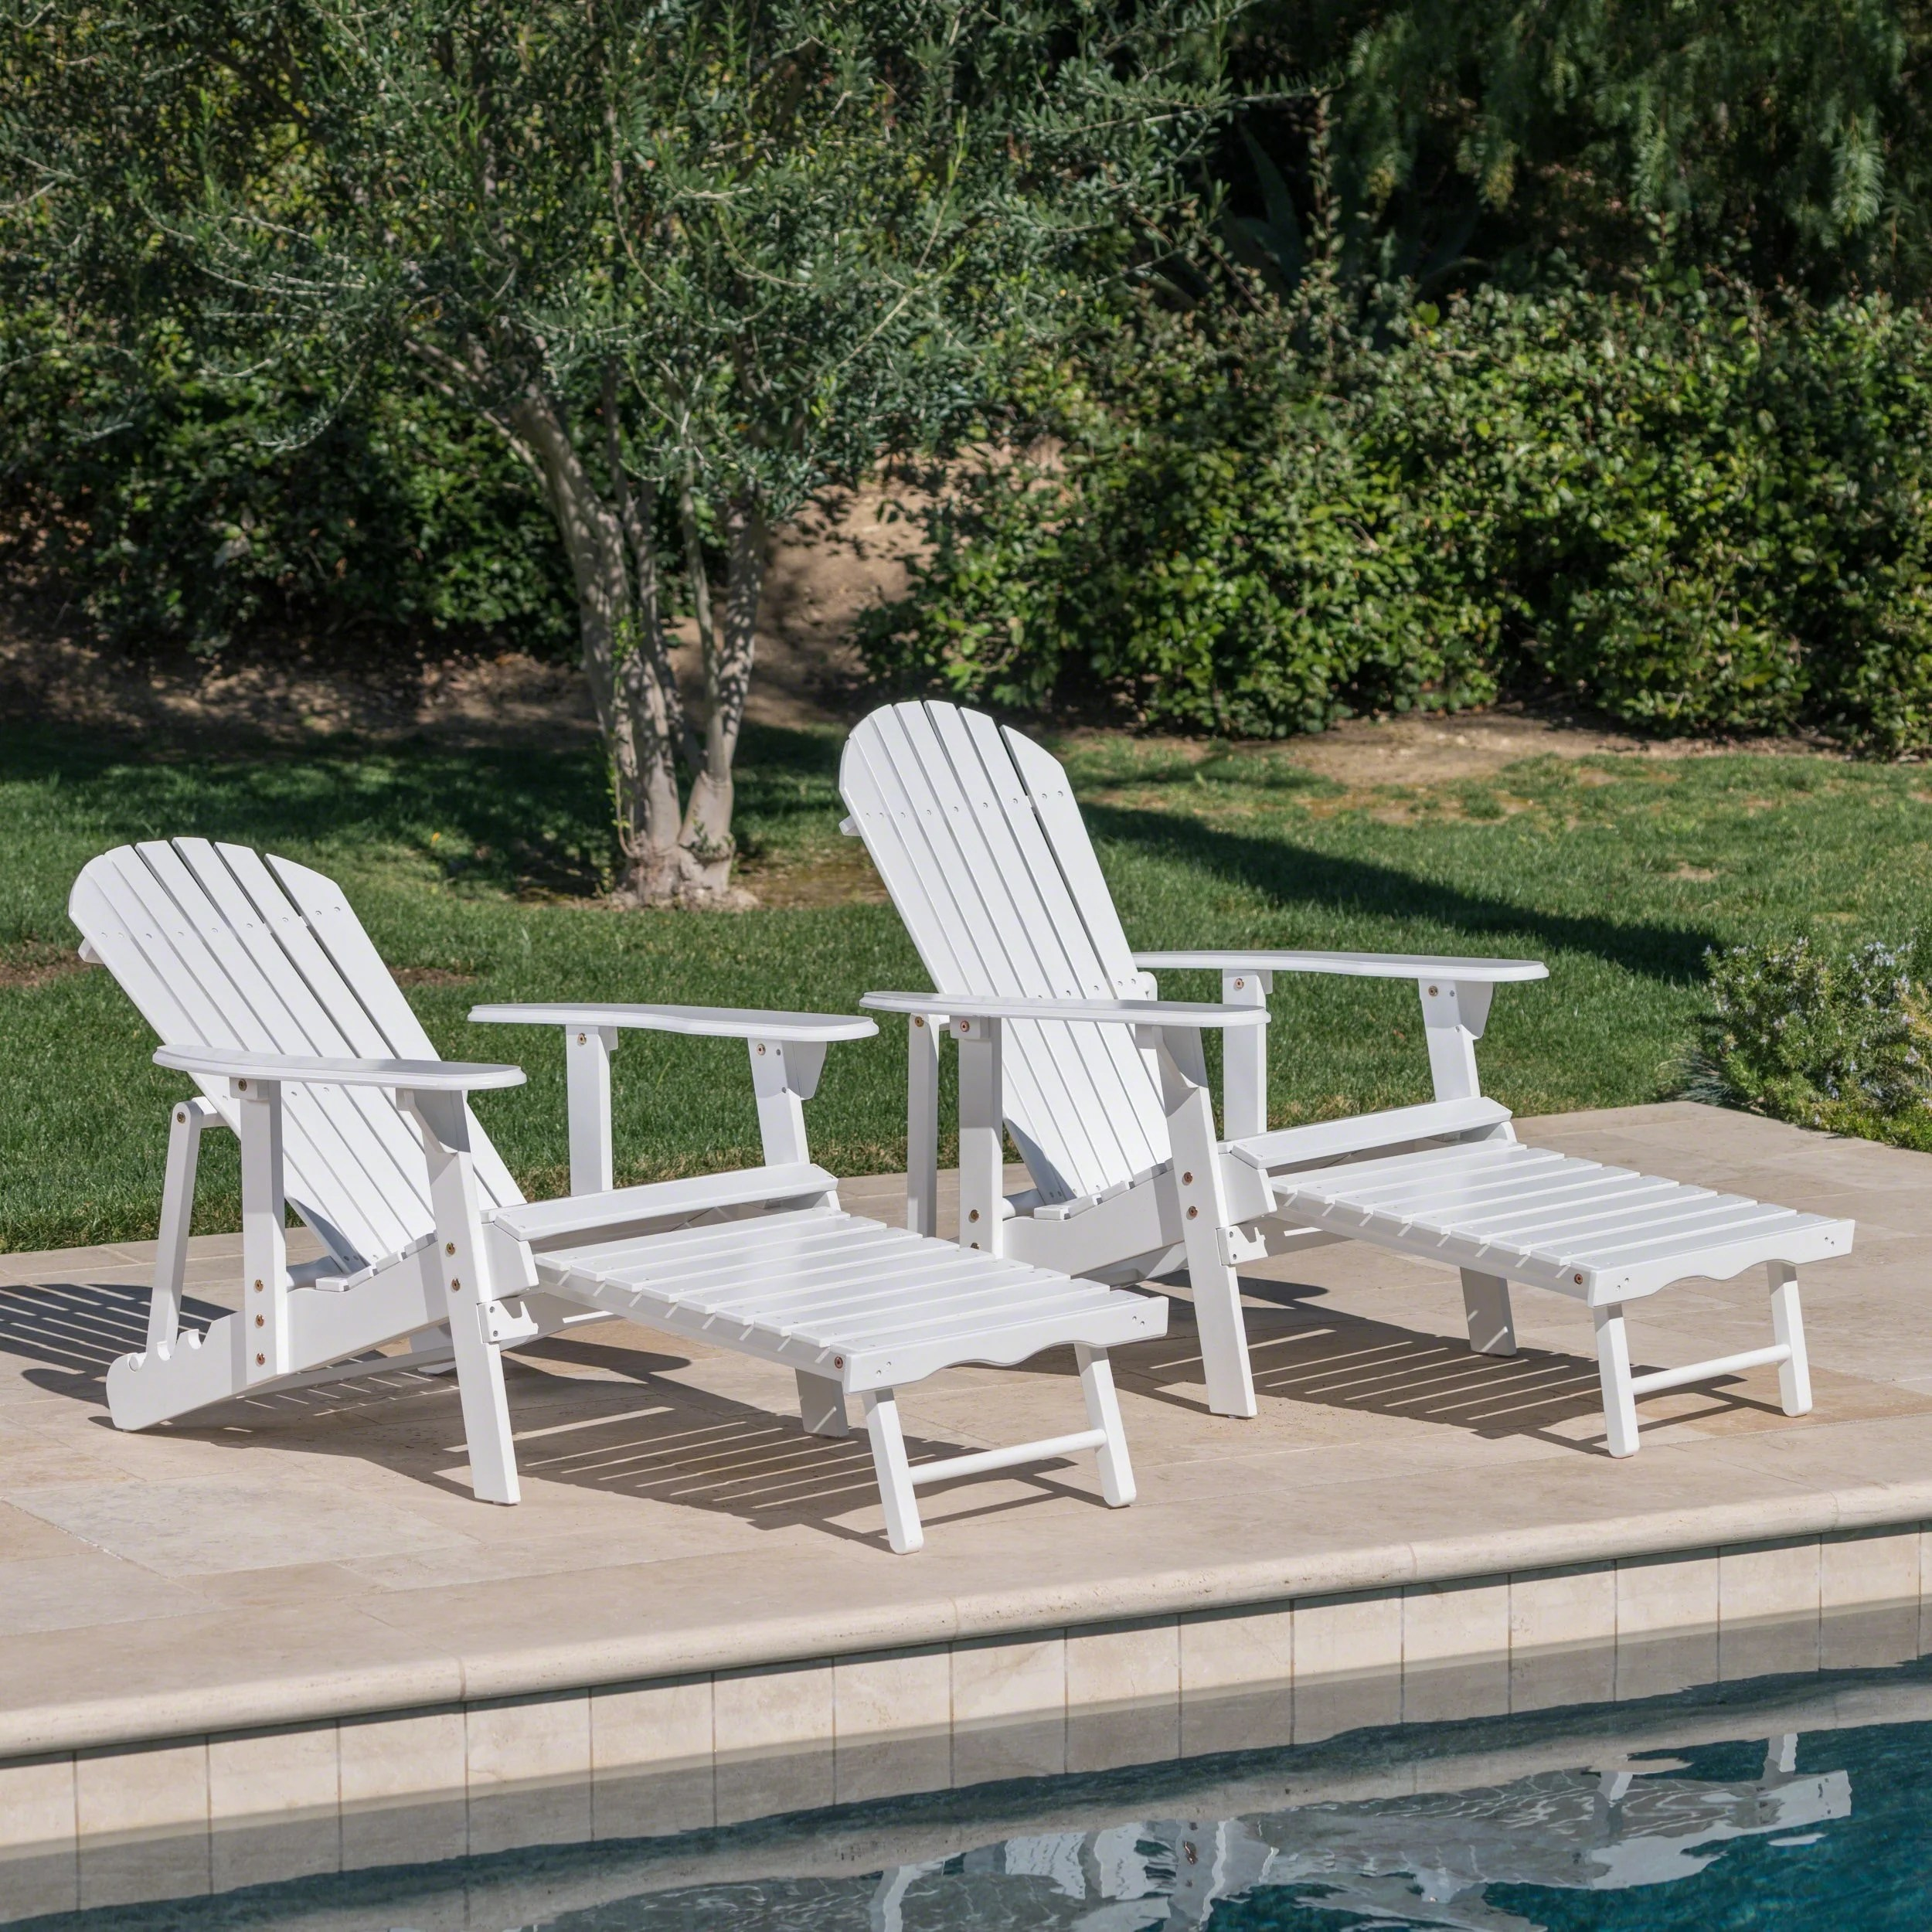 Adirondack Chair Set Hayle Outdoor Reclining Wood Adirondack Chair With Footrest Set Of 2 By Christopher Knight Home